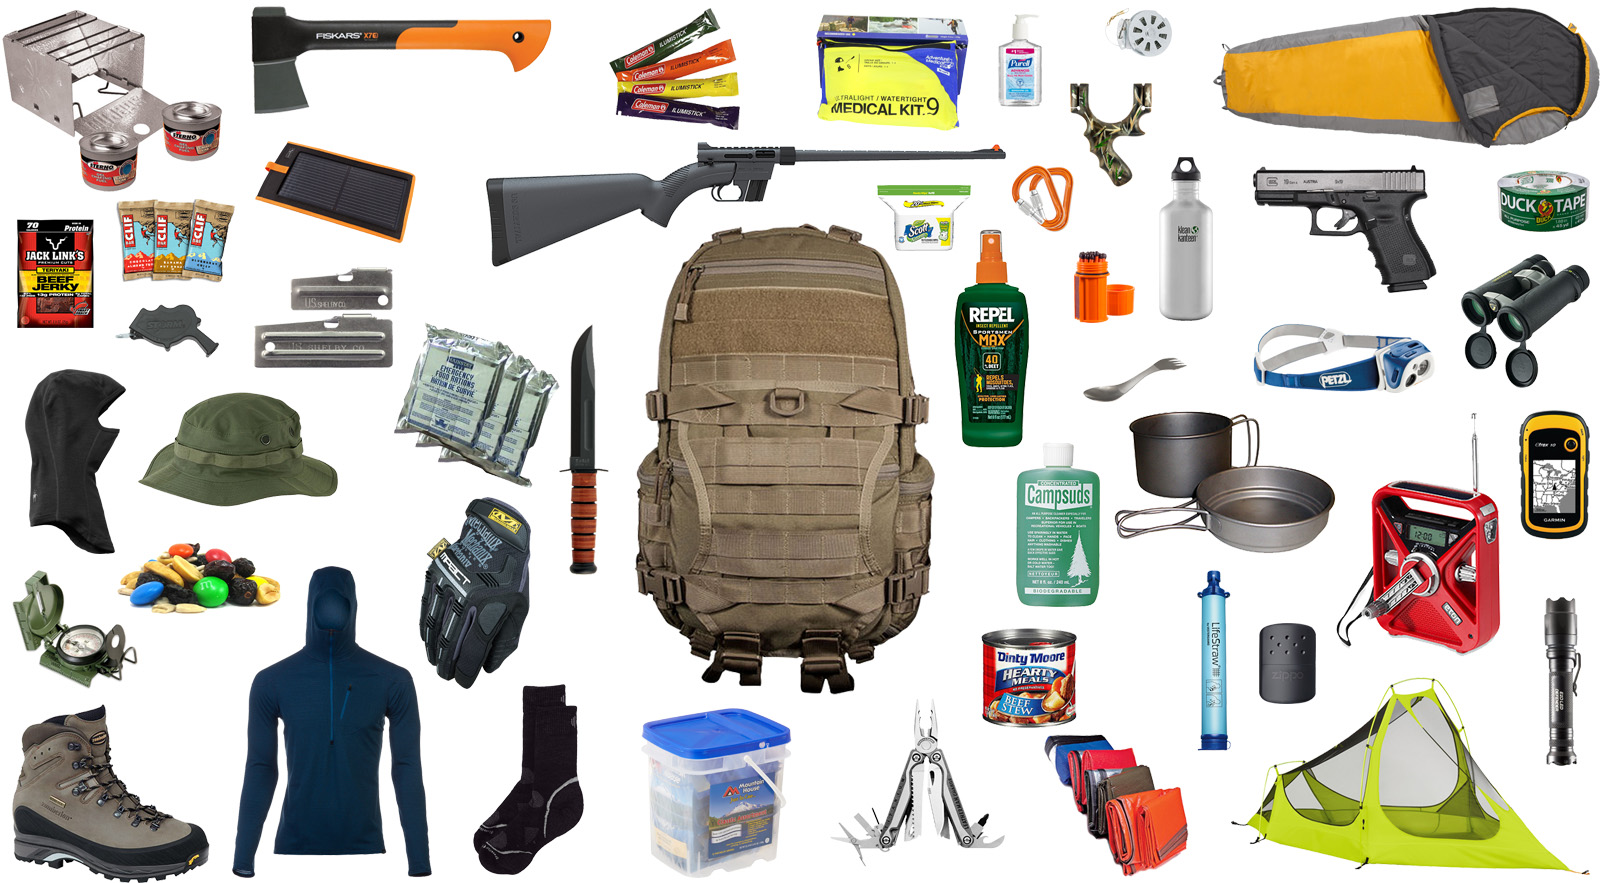 After the Fall: Bug Out Bag Essentials Checklist